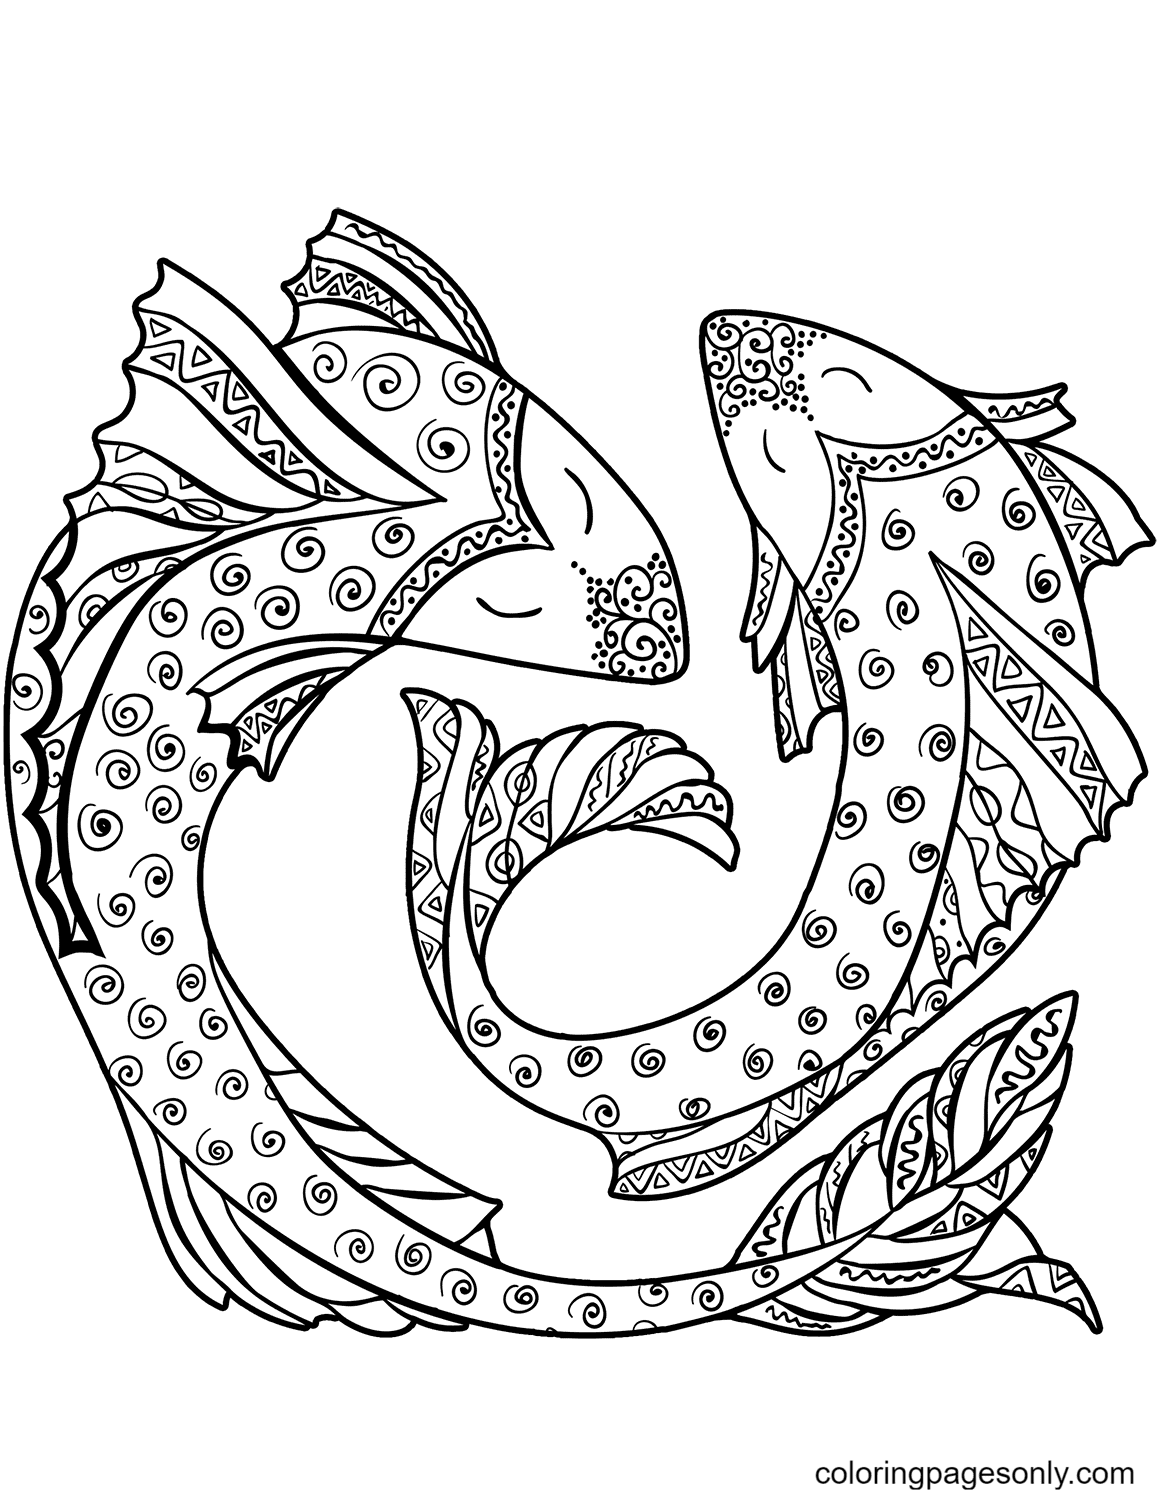 Pisces Zodiac Sign Free Printable Coloring Page